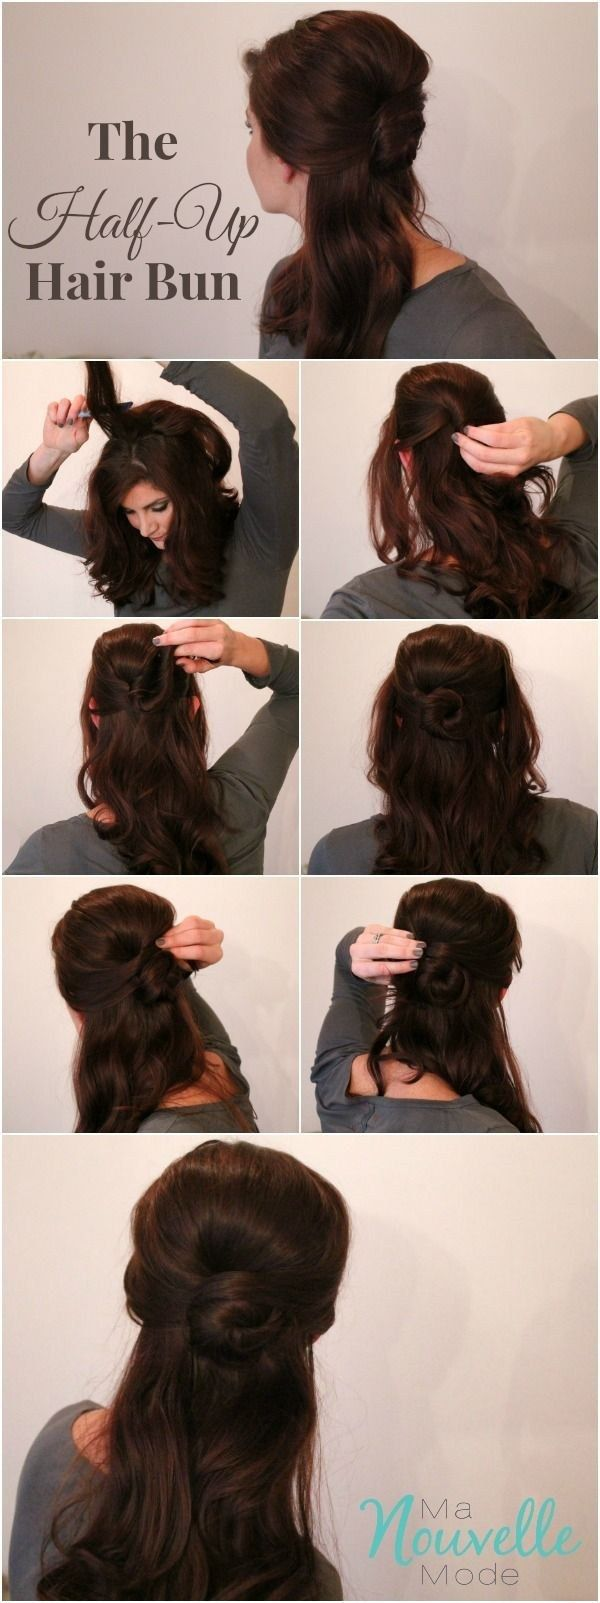 Belle's elegant half-up bun | 7 Easy Hair Tutorials Even Disney Princesses Would Envy